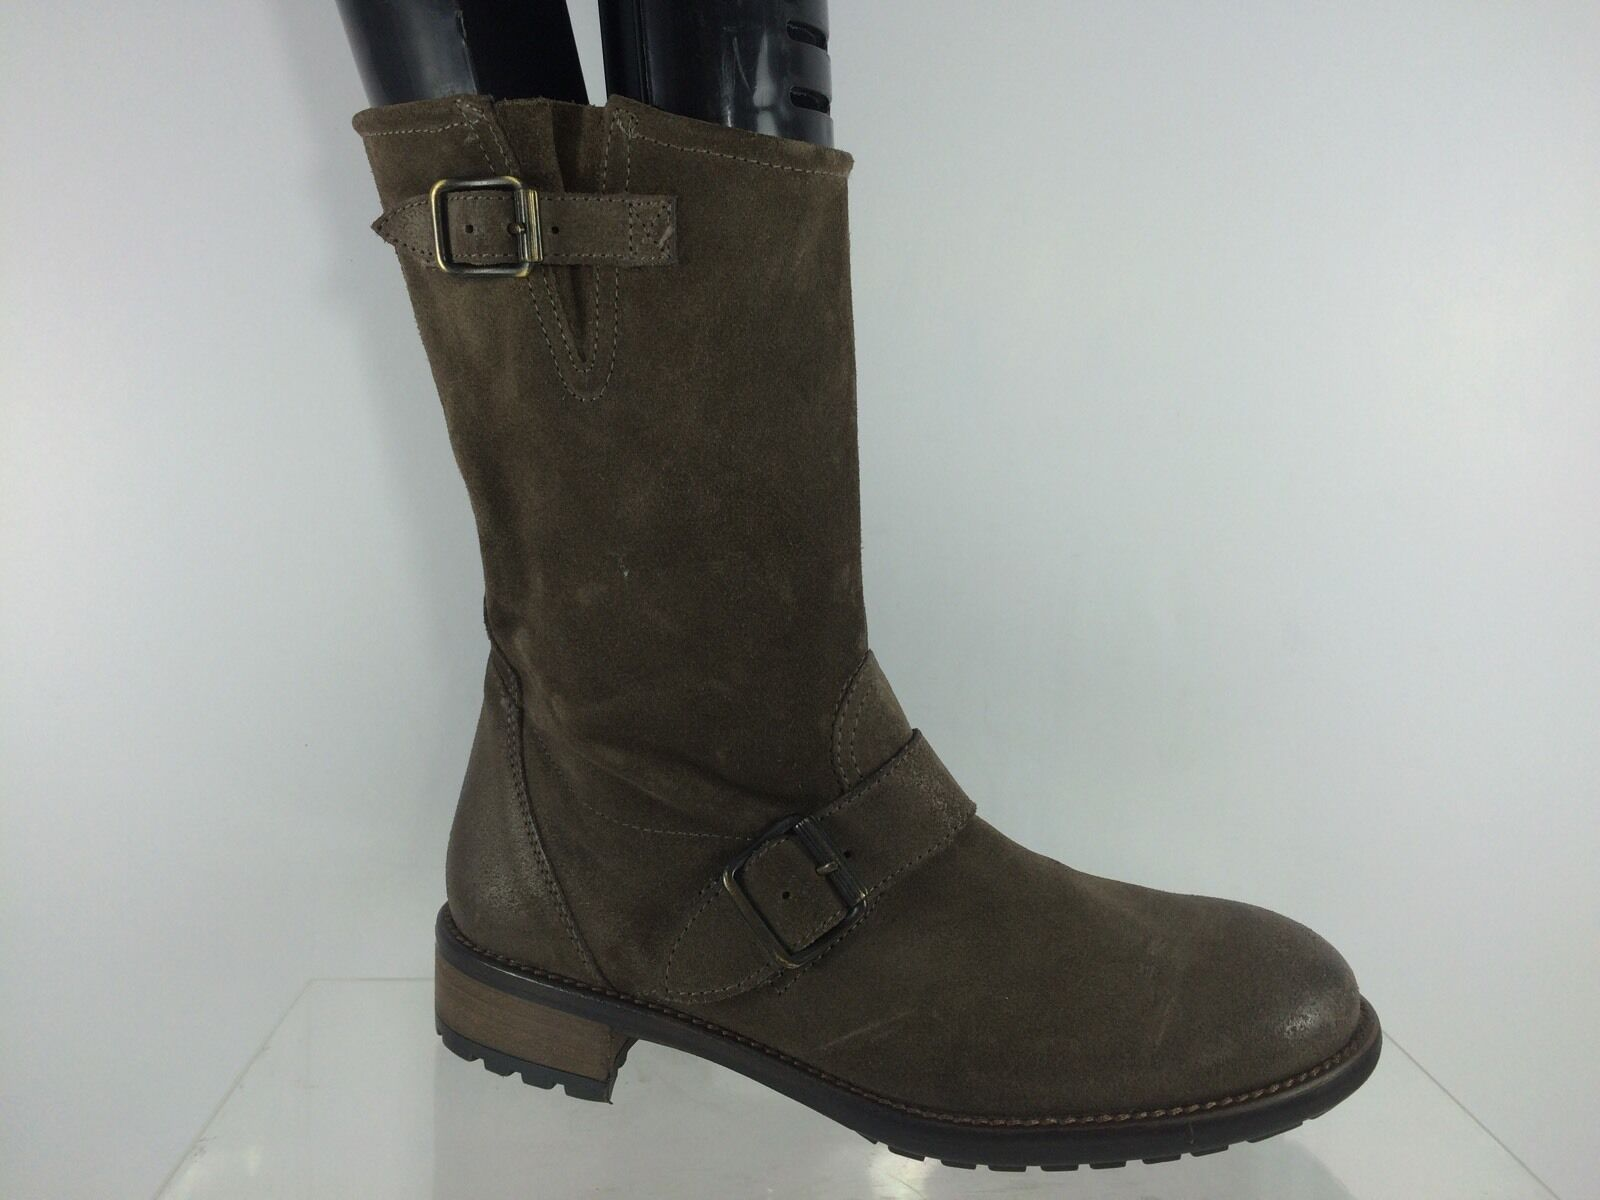 455 Paul Green Womens Brown Suede Leather Short Buckle Boots 3.5, US 6